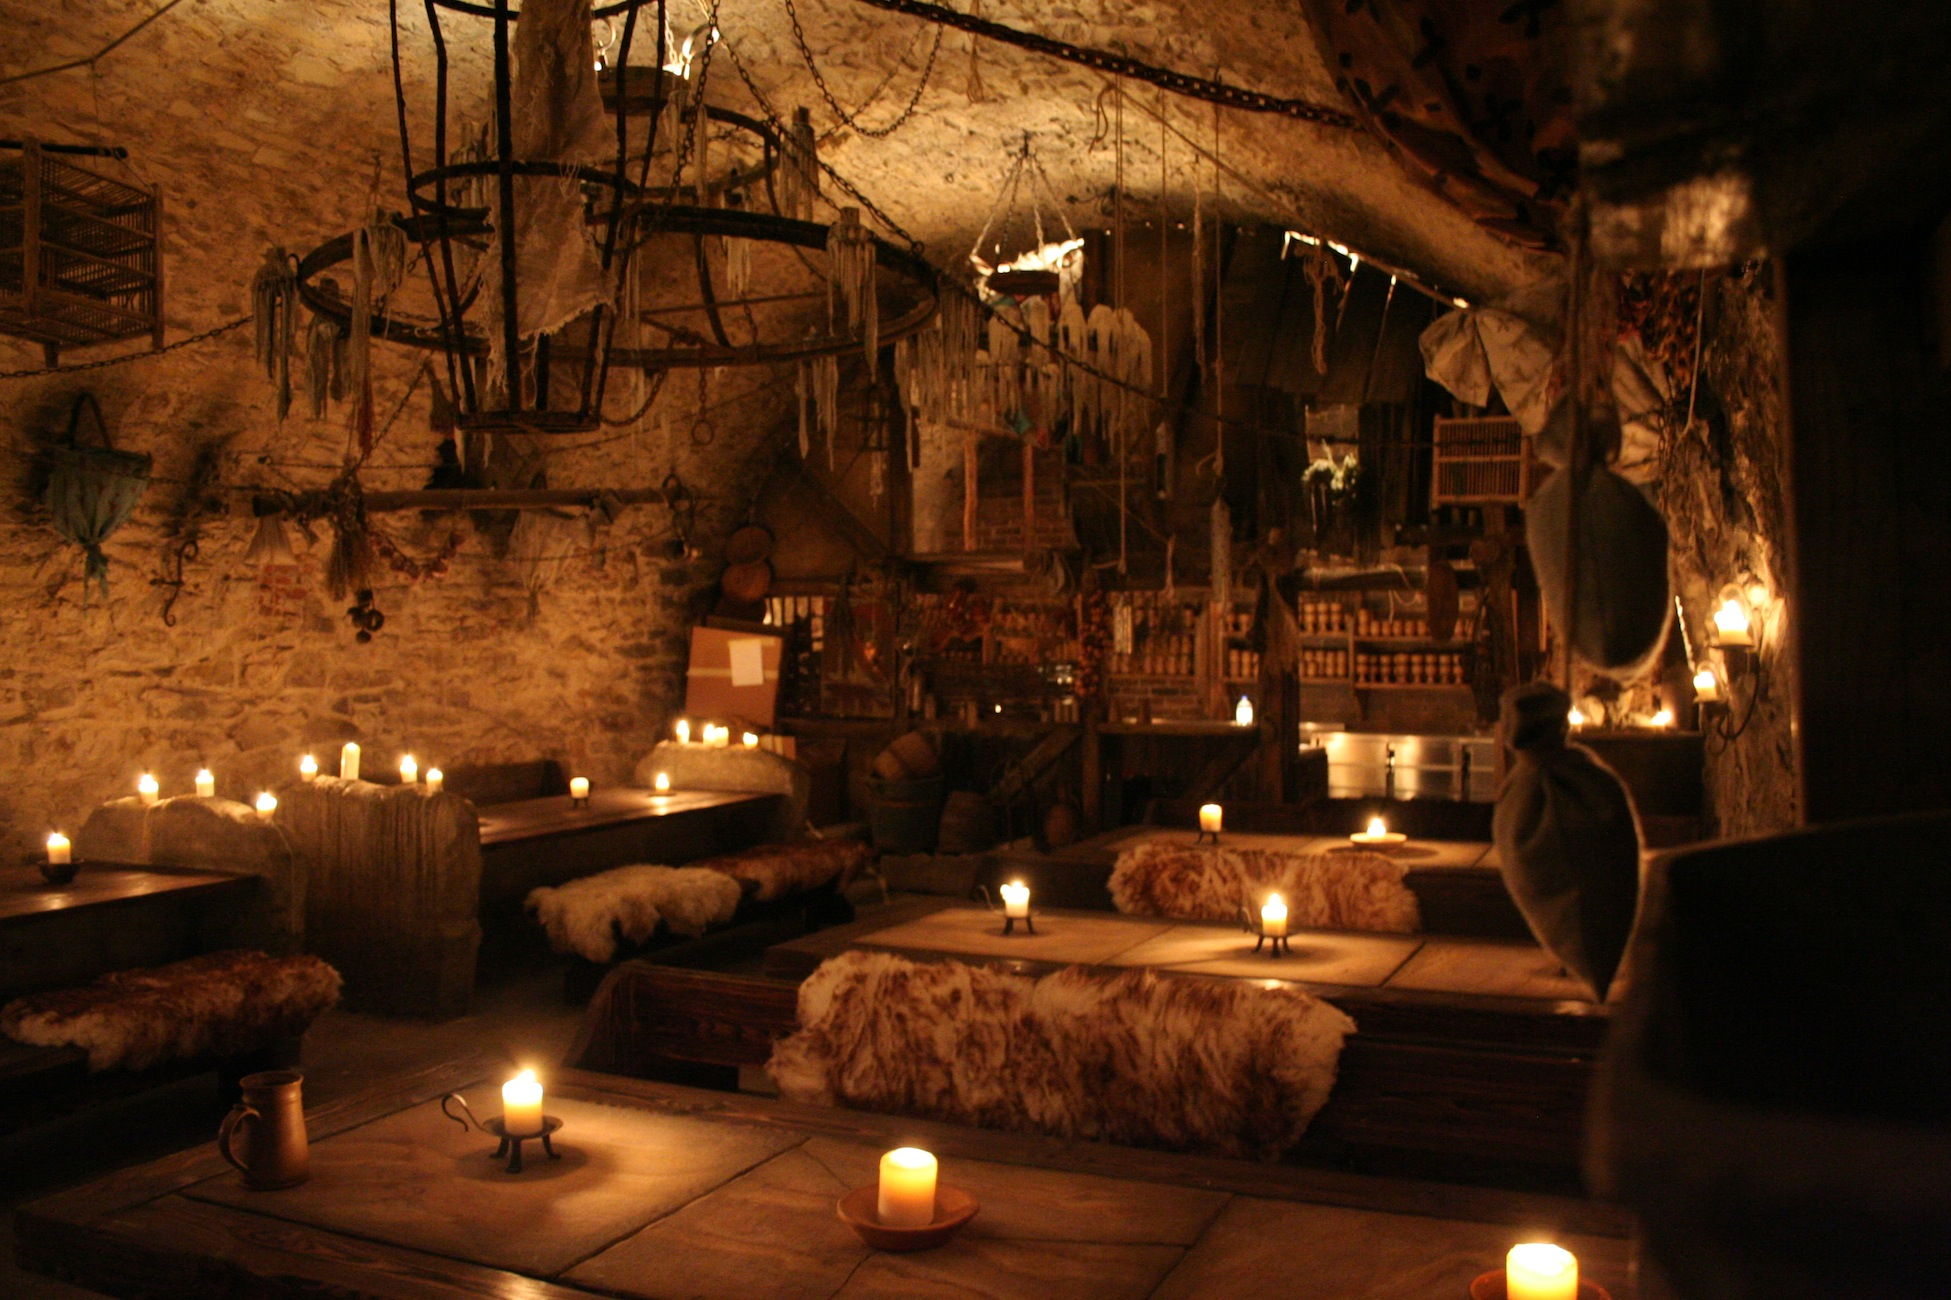 5 Medieval Style Game Of Thrones Restaurants In Europe